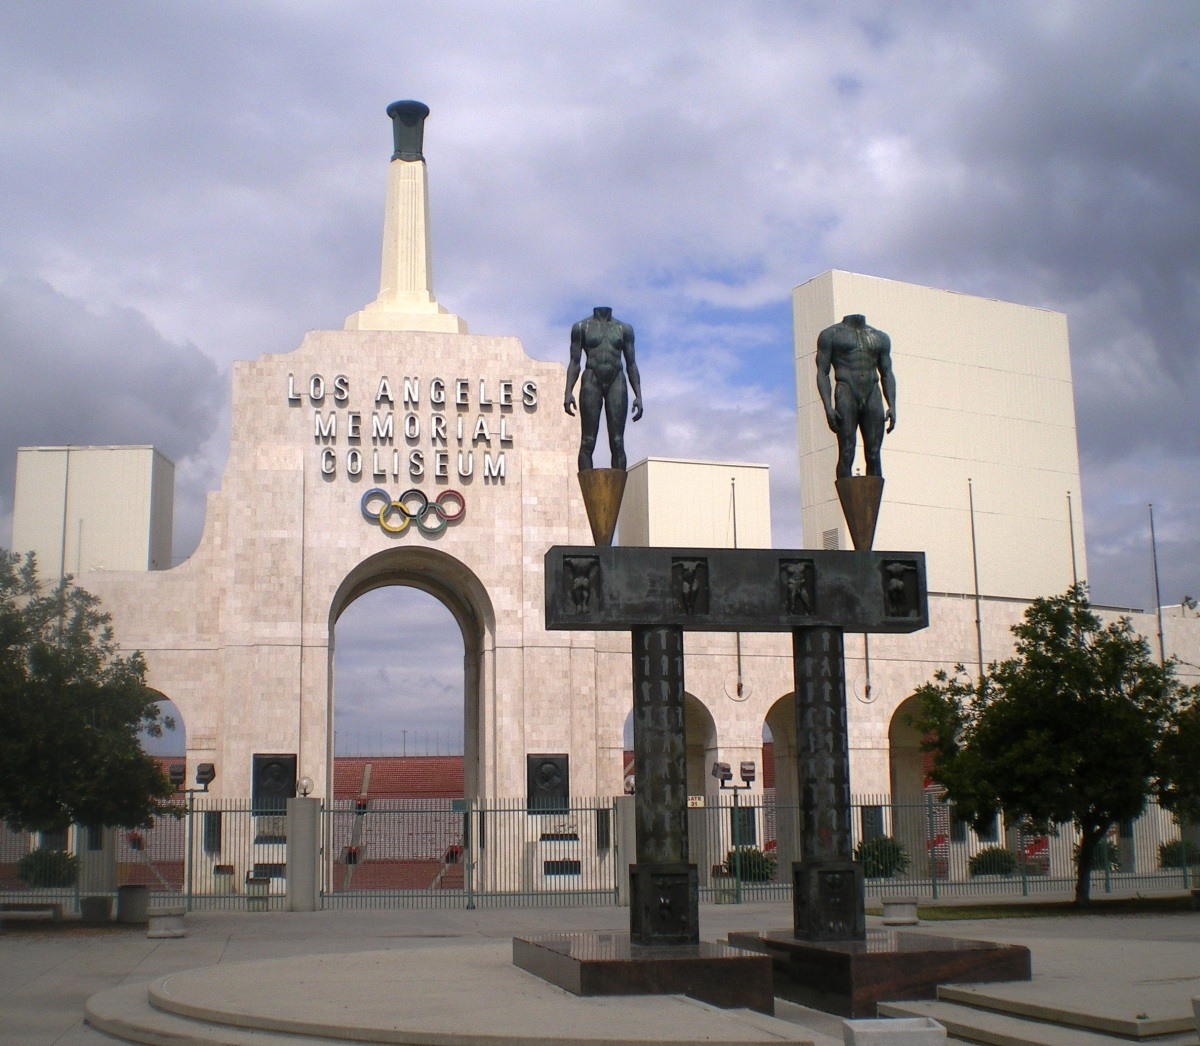 1. LOS ANGELES MEMORIAL COLISEUM